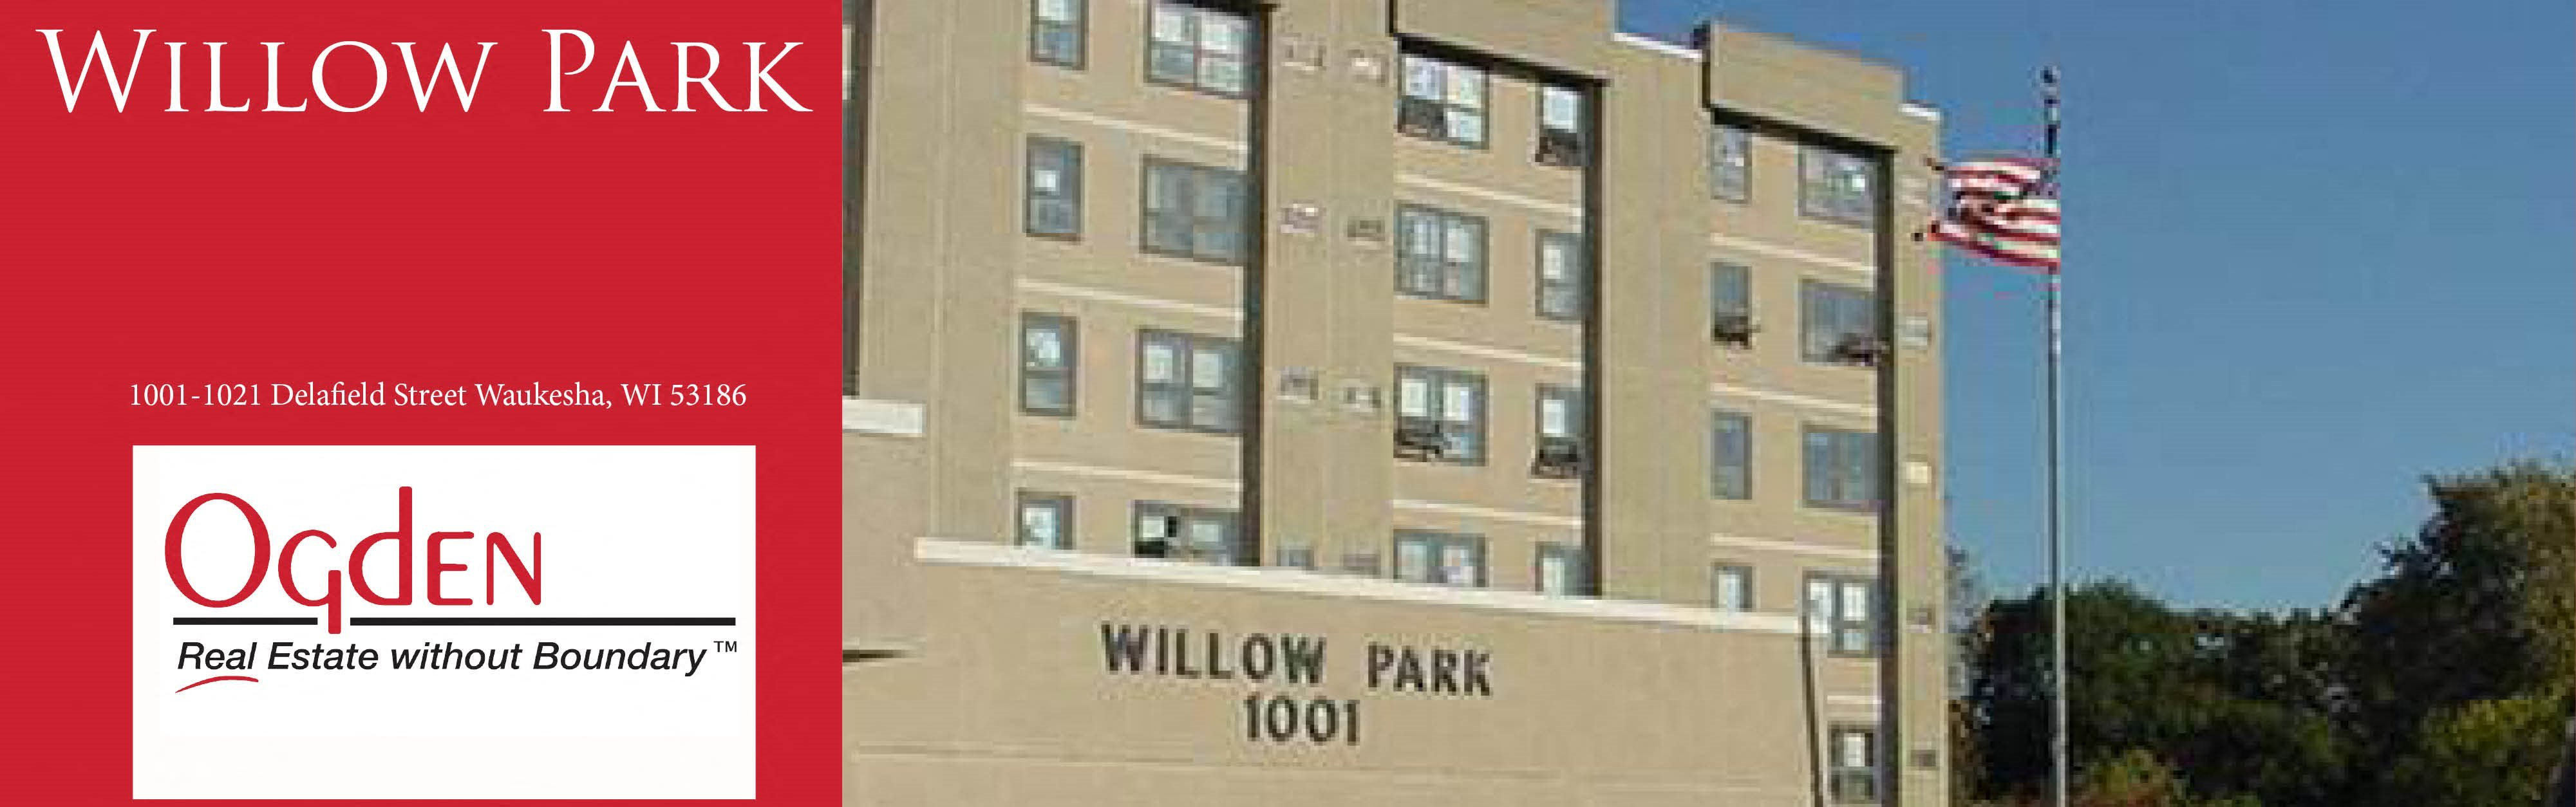 Willow Park Ogden and Company